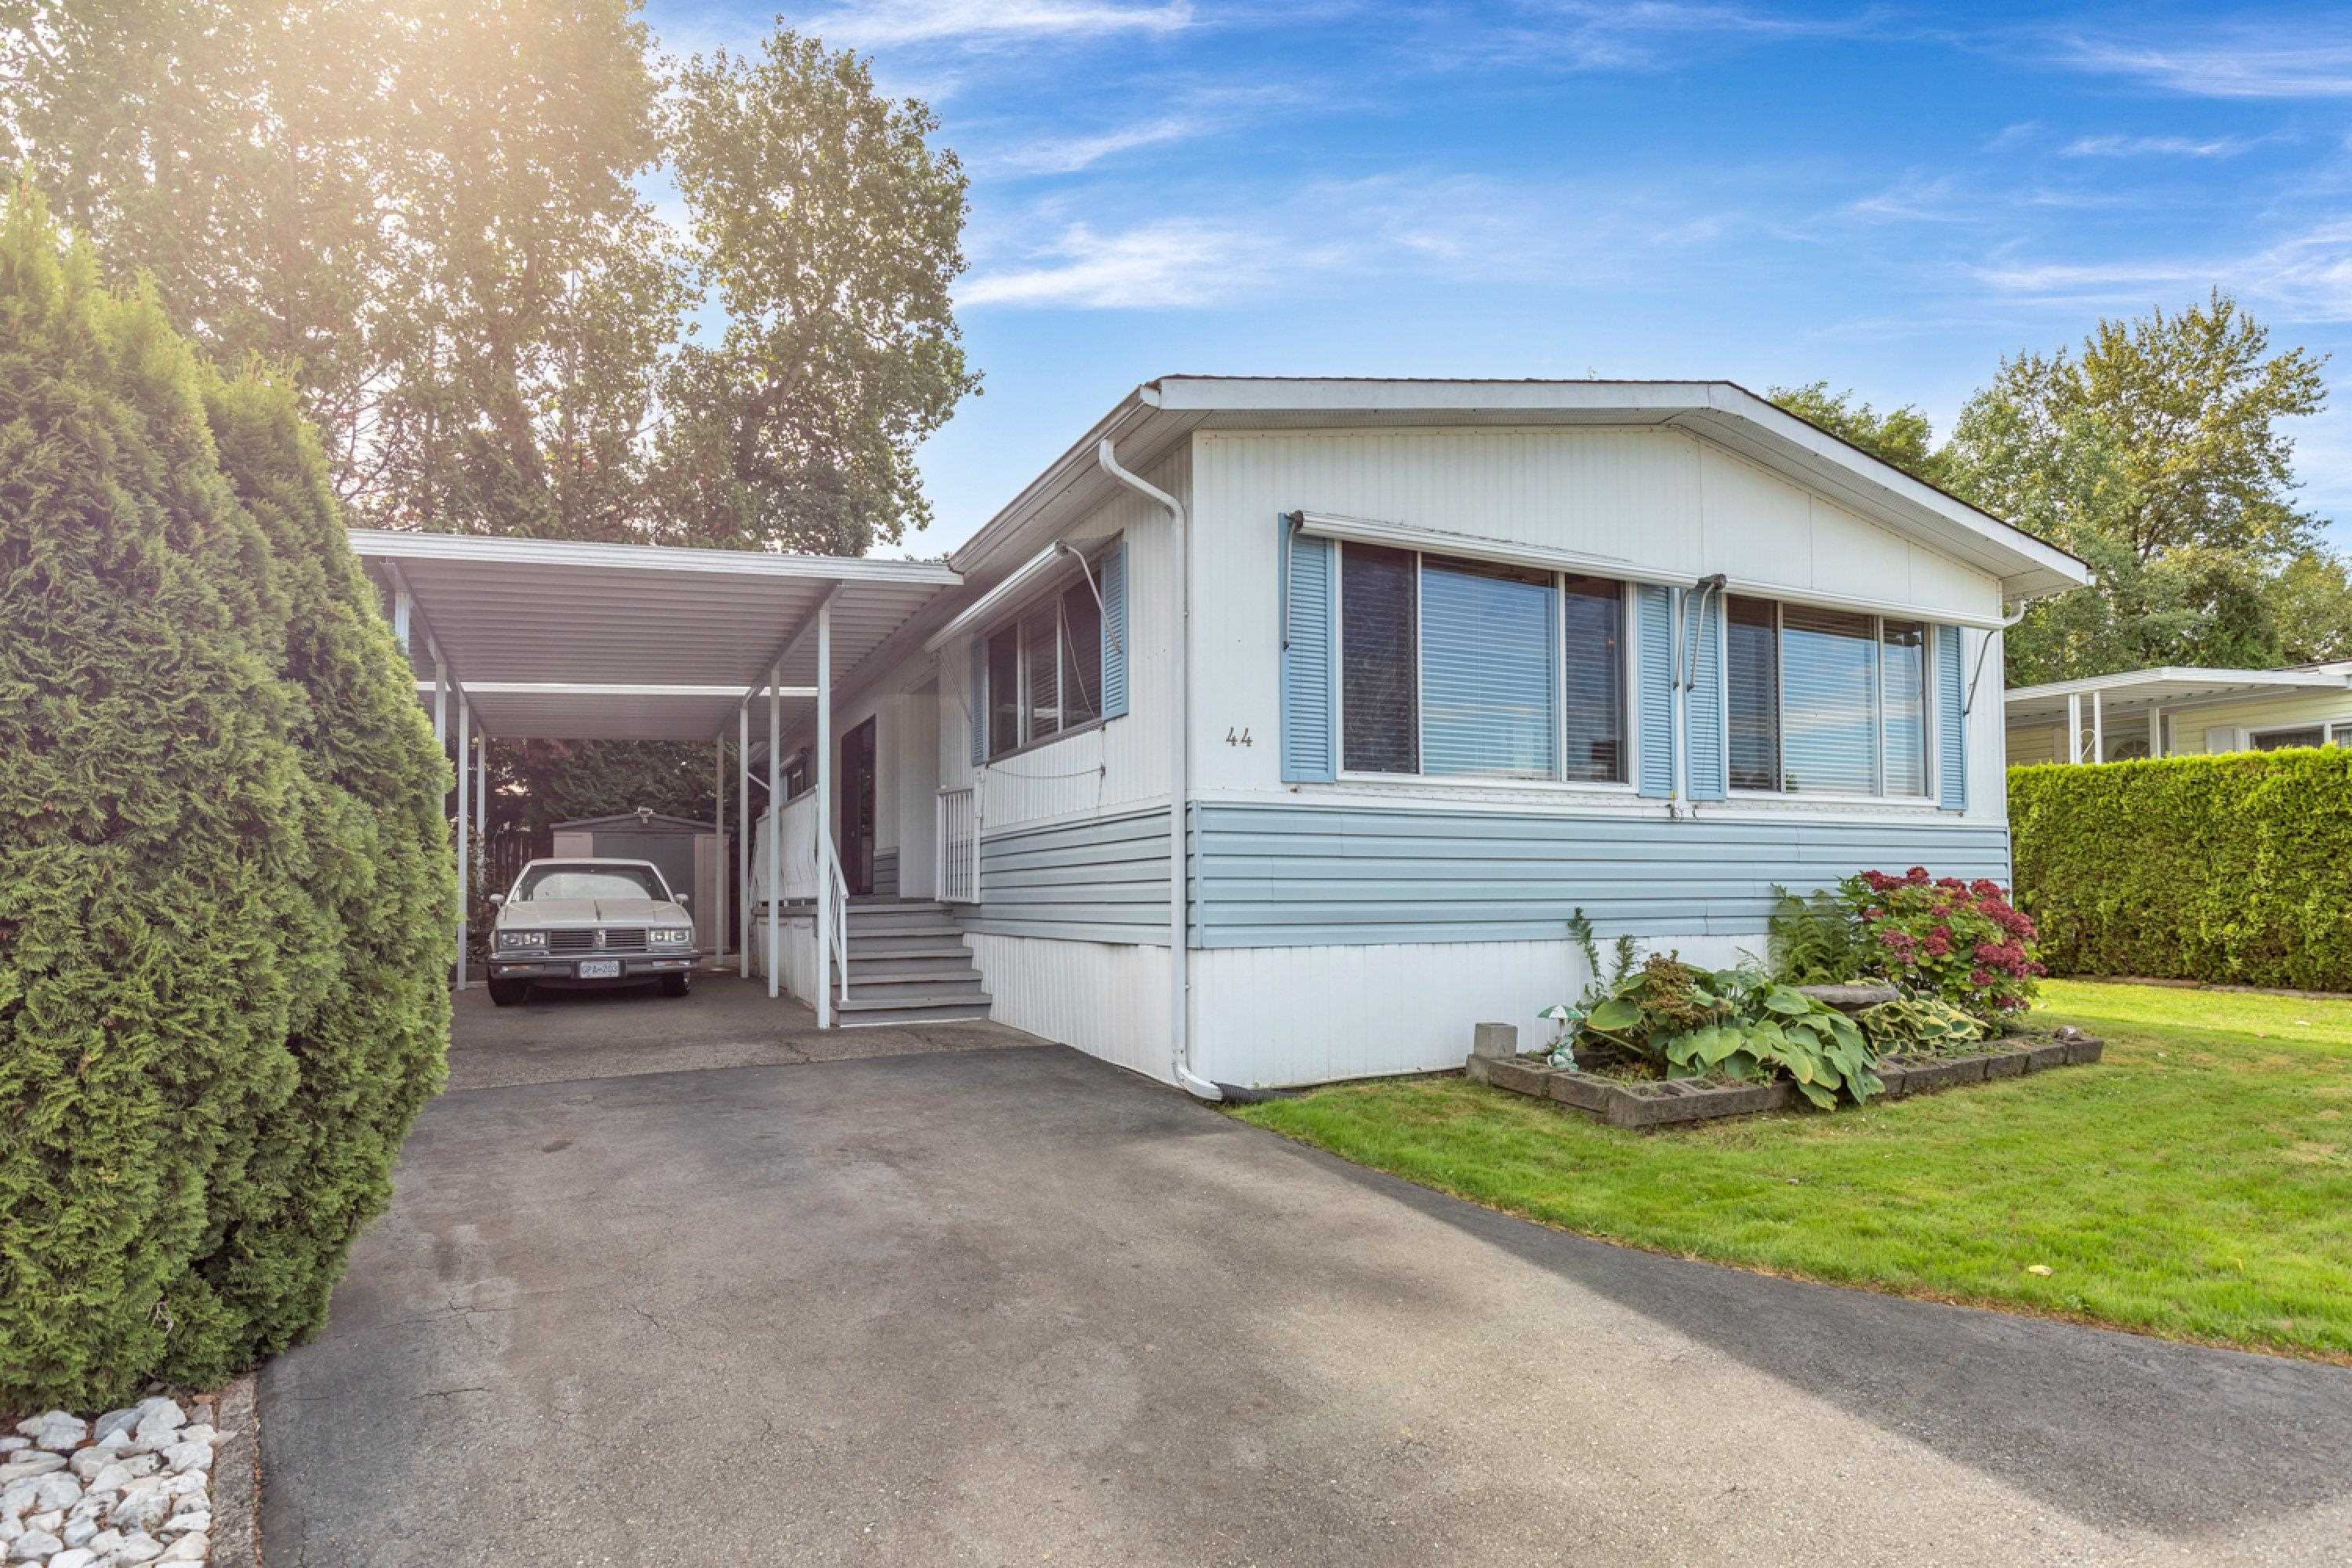 44 13507 81 AVENUE - Queen Mary Park Surrey Manufactured with Land for sale, 2 Bedrooms (R2624906) - #1